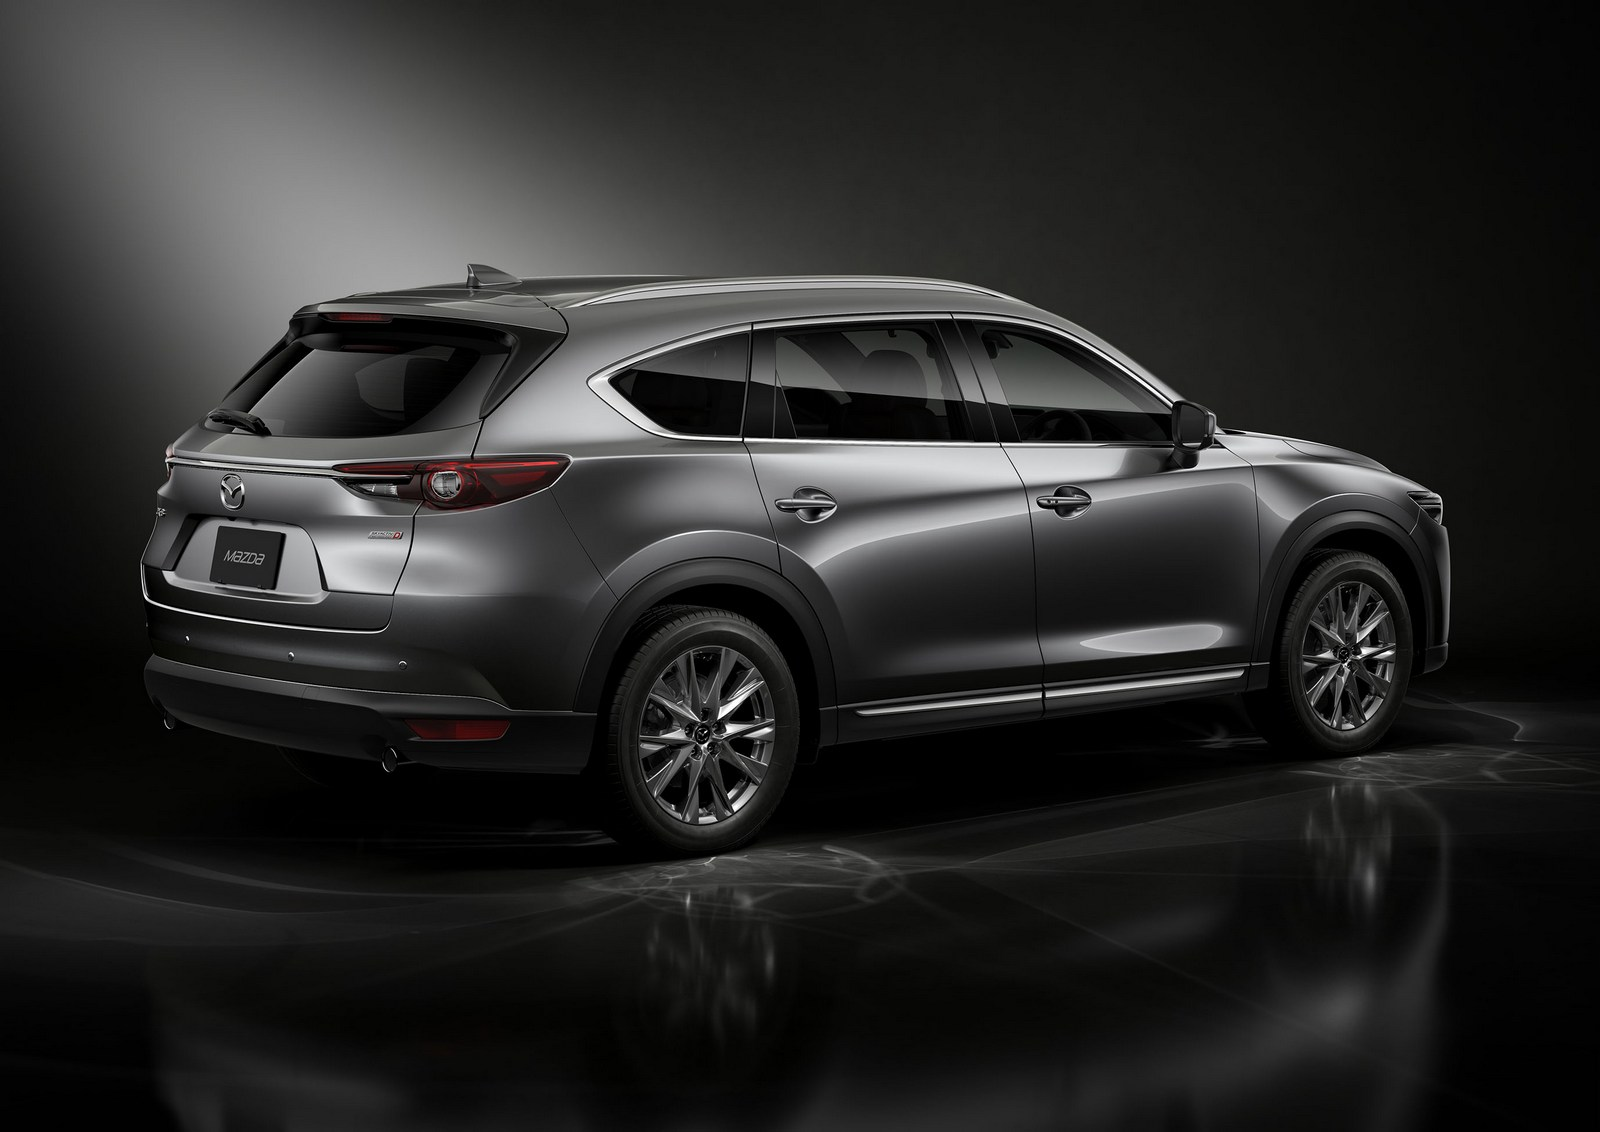 2018 mazda cx 8 unveiled with a diesel engine. Black Bedroom Furniture Sets. Home Design Ideas